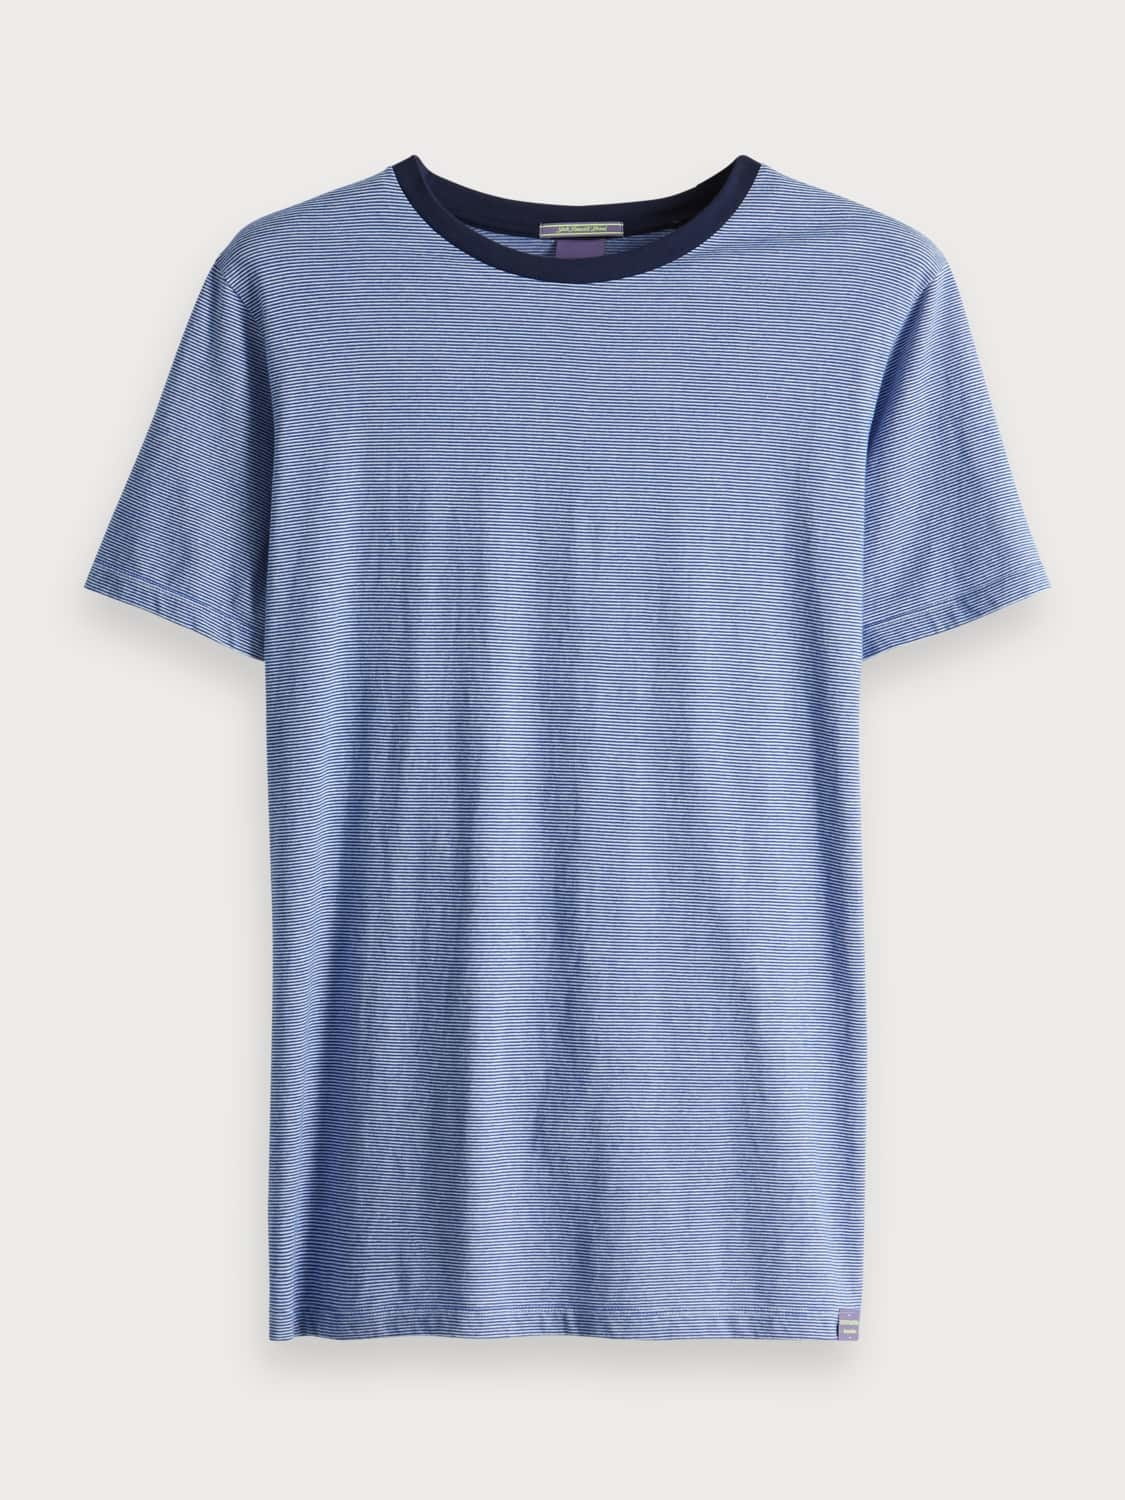 Scotch & Soda Scotch & Soda T-shirt rayé